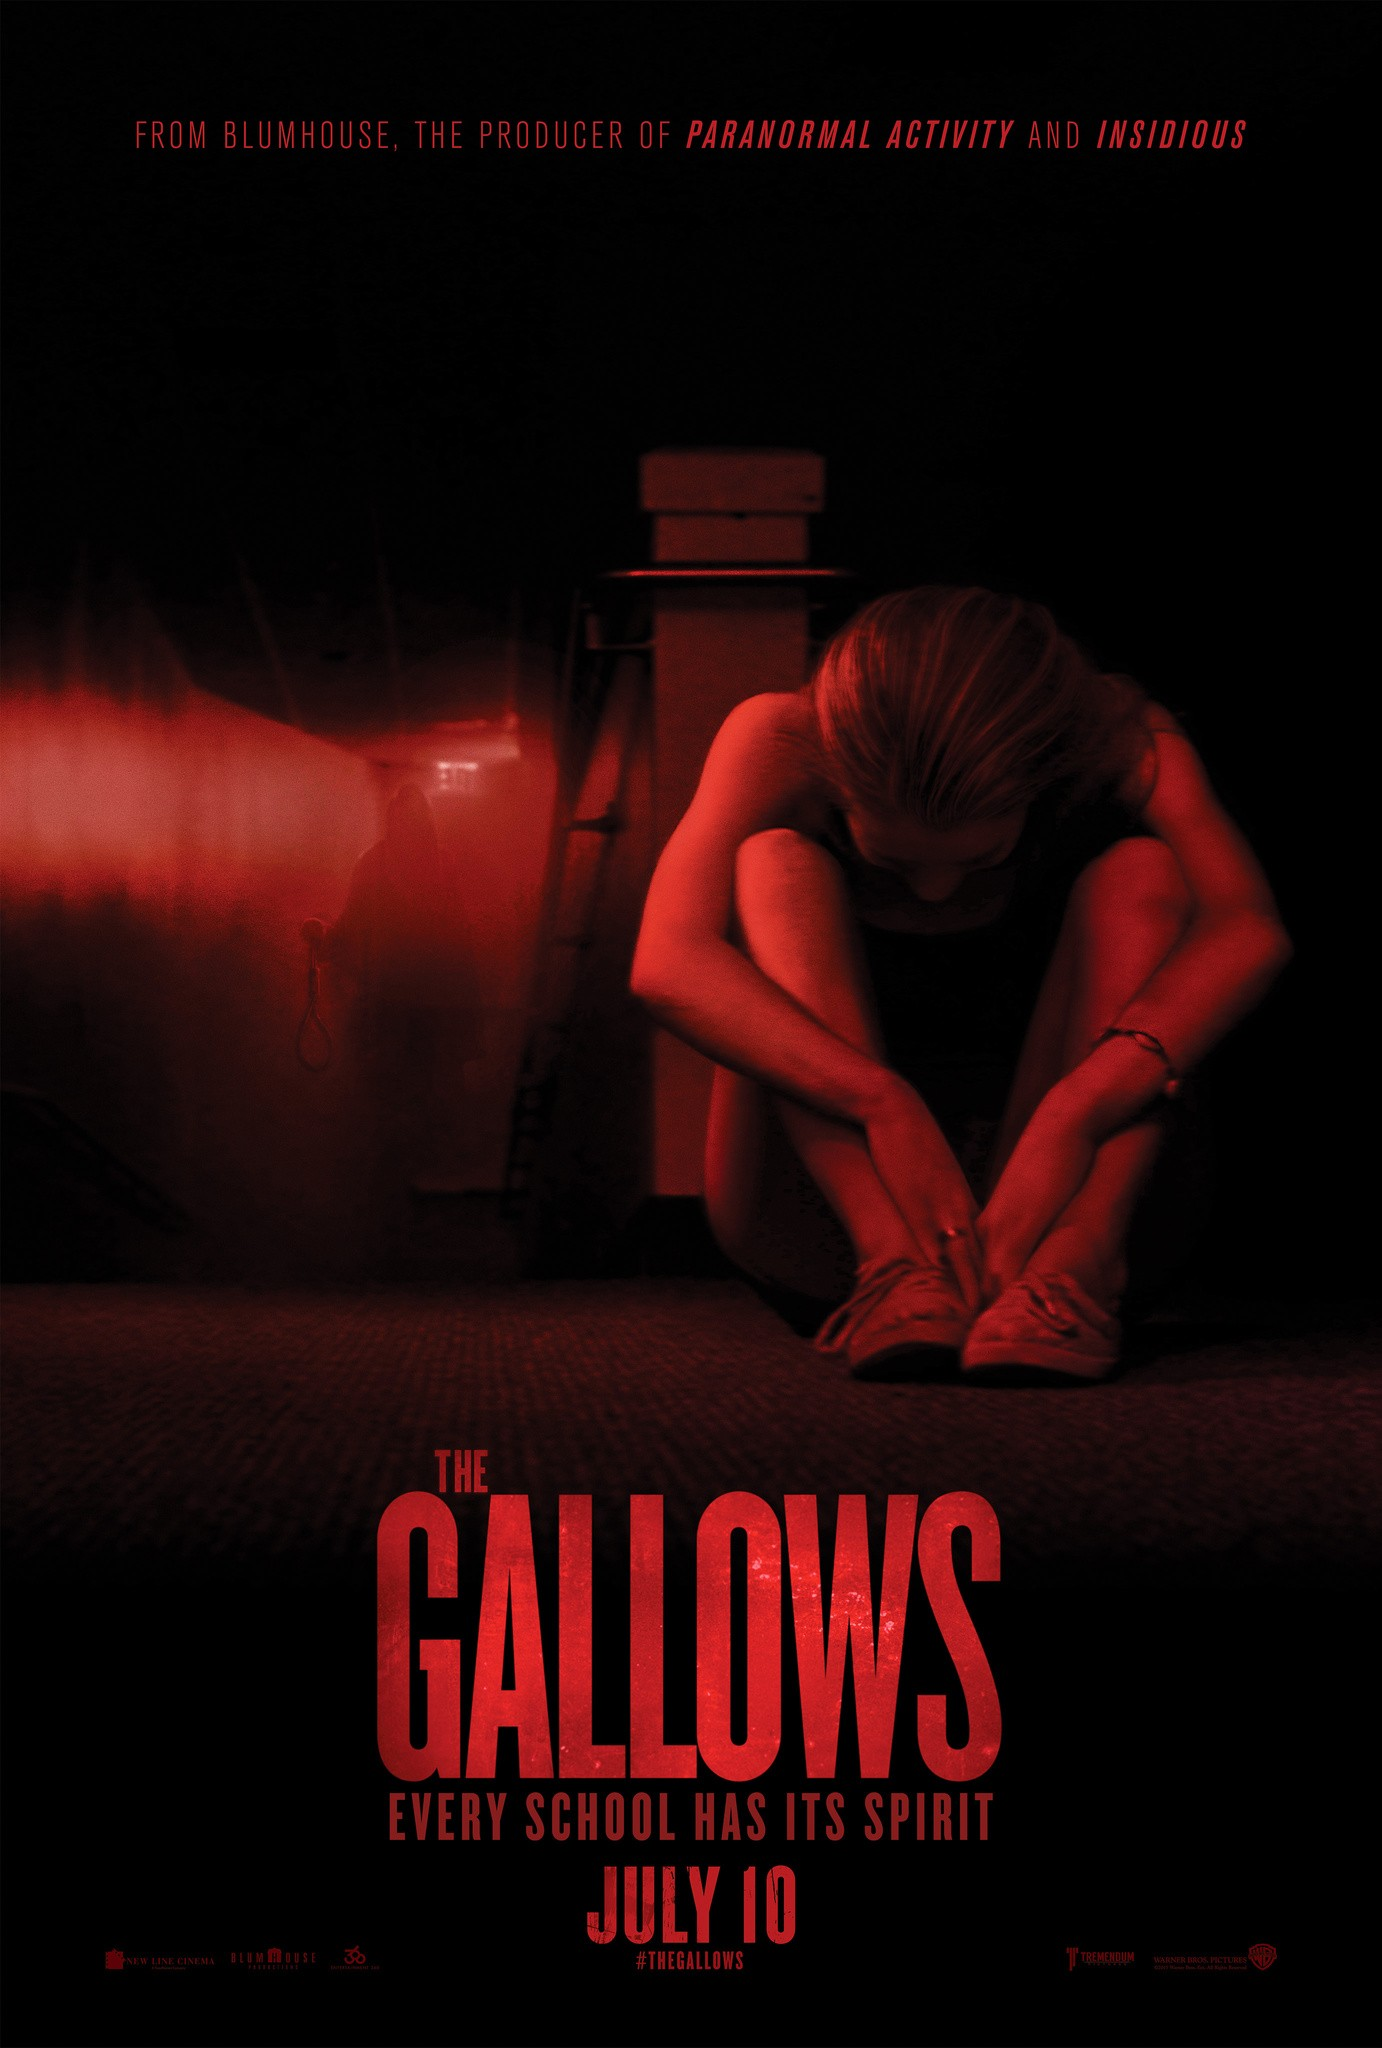 The Gallows-Poster-26Maio2015